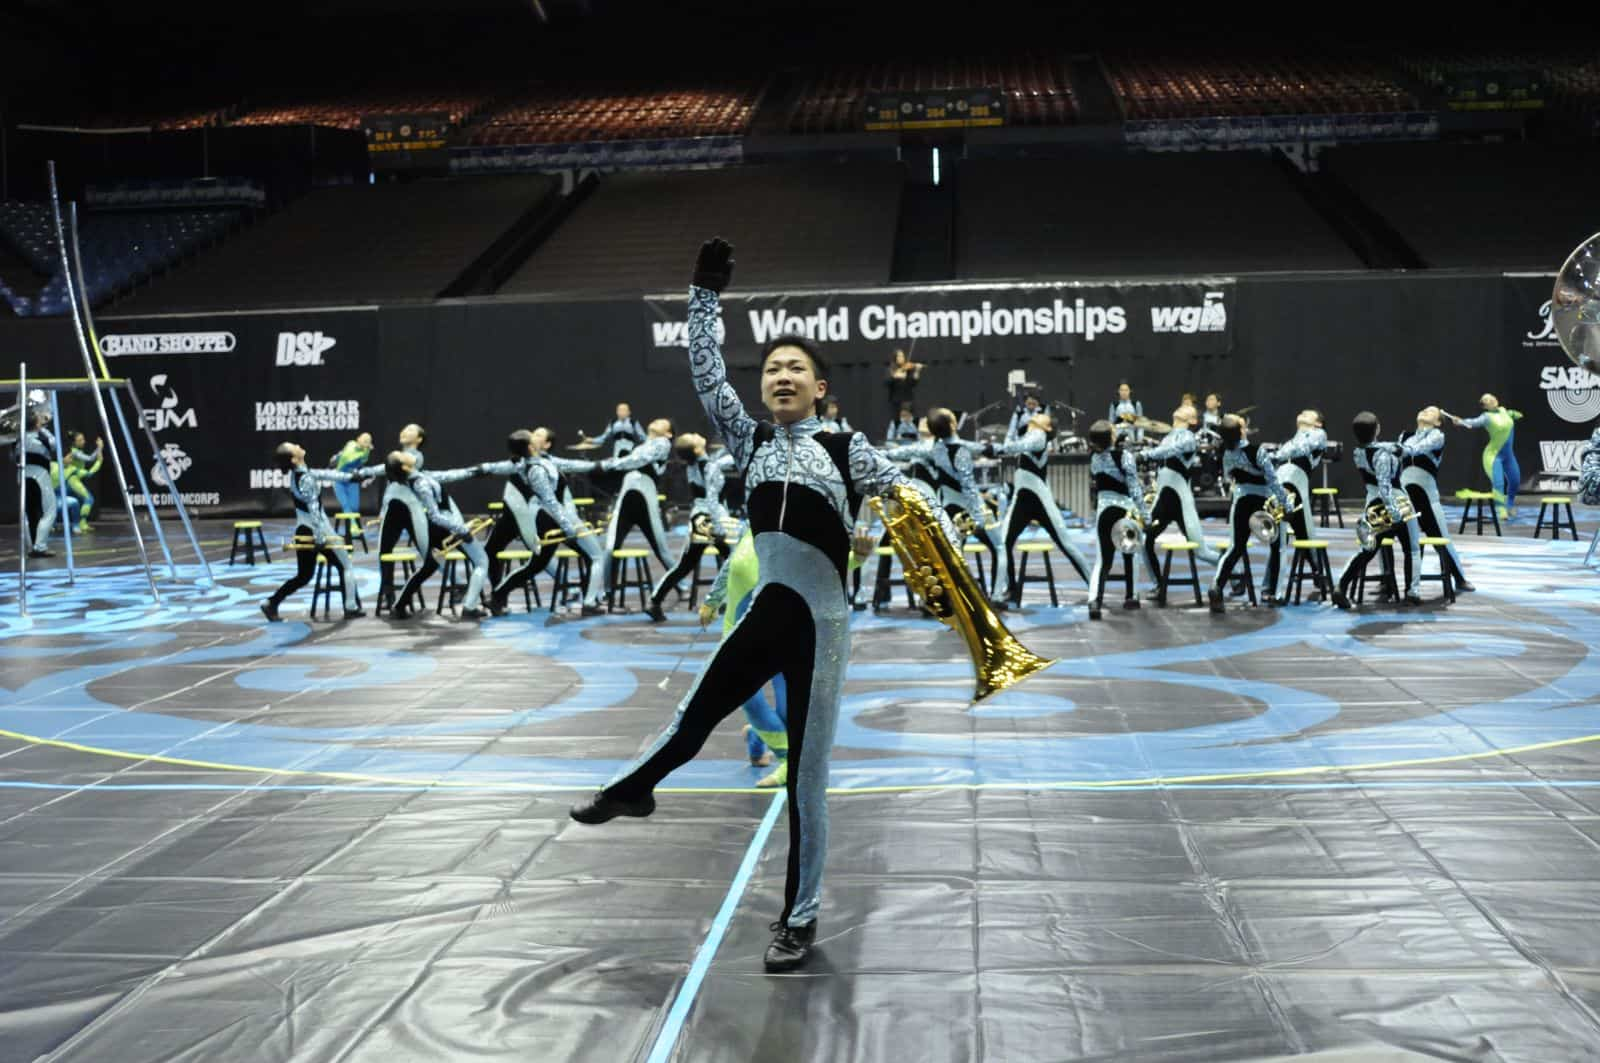 Wgi Quotes To Live By Wgi